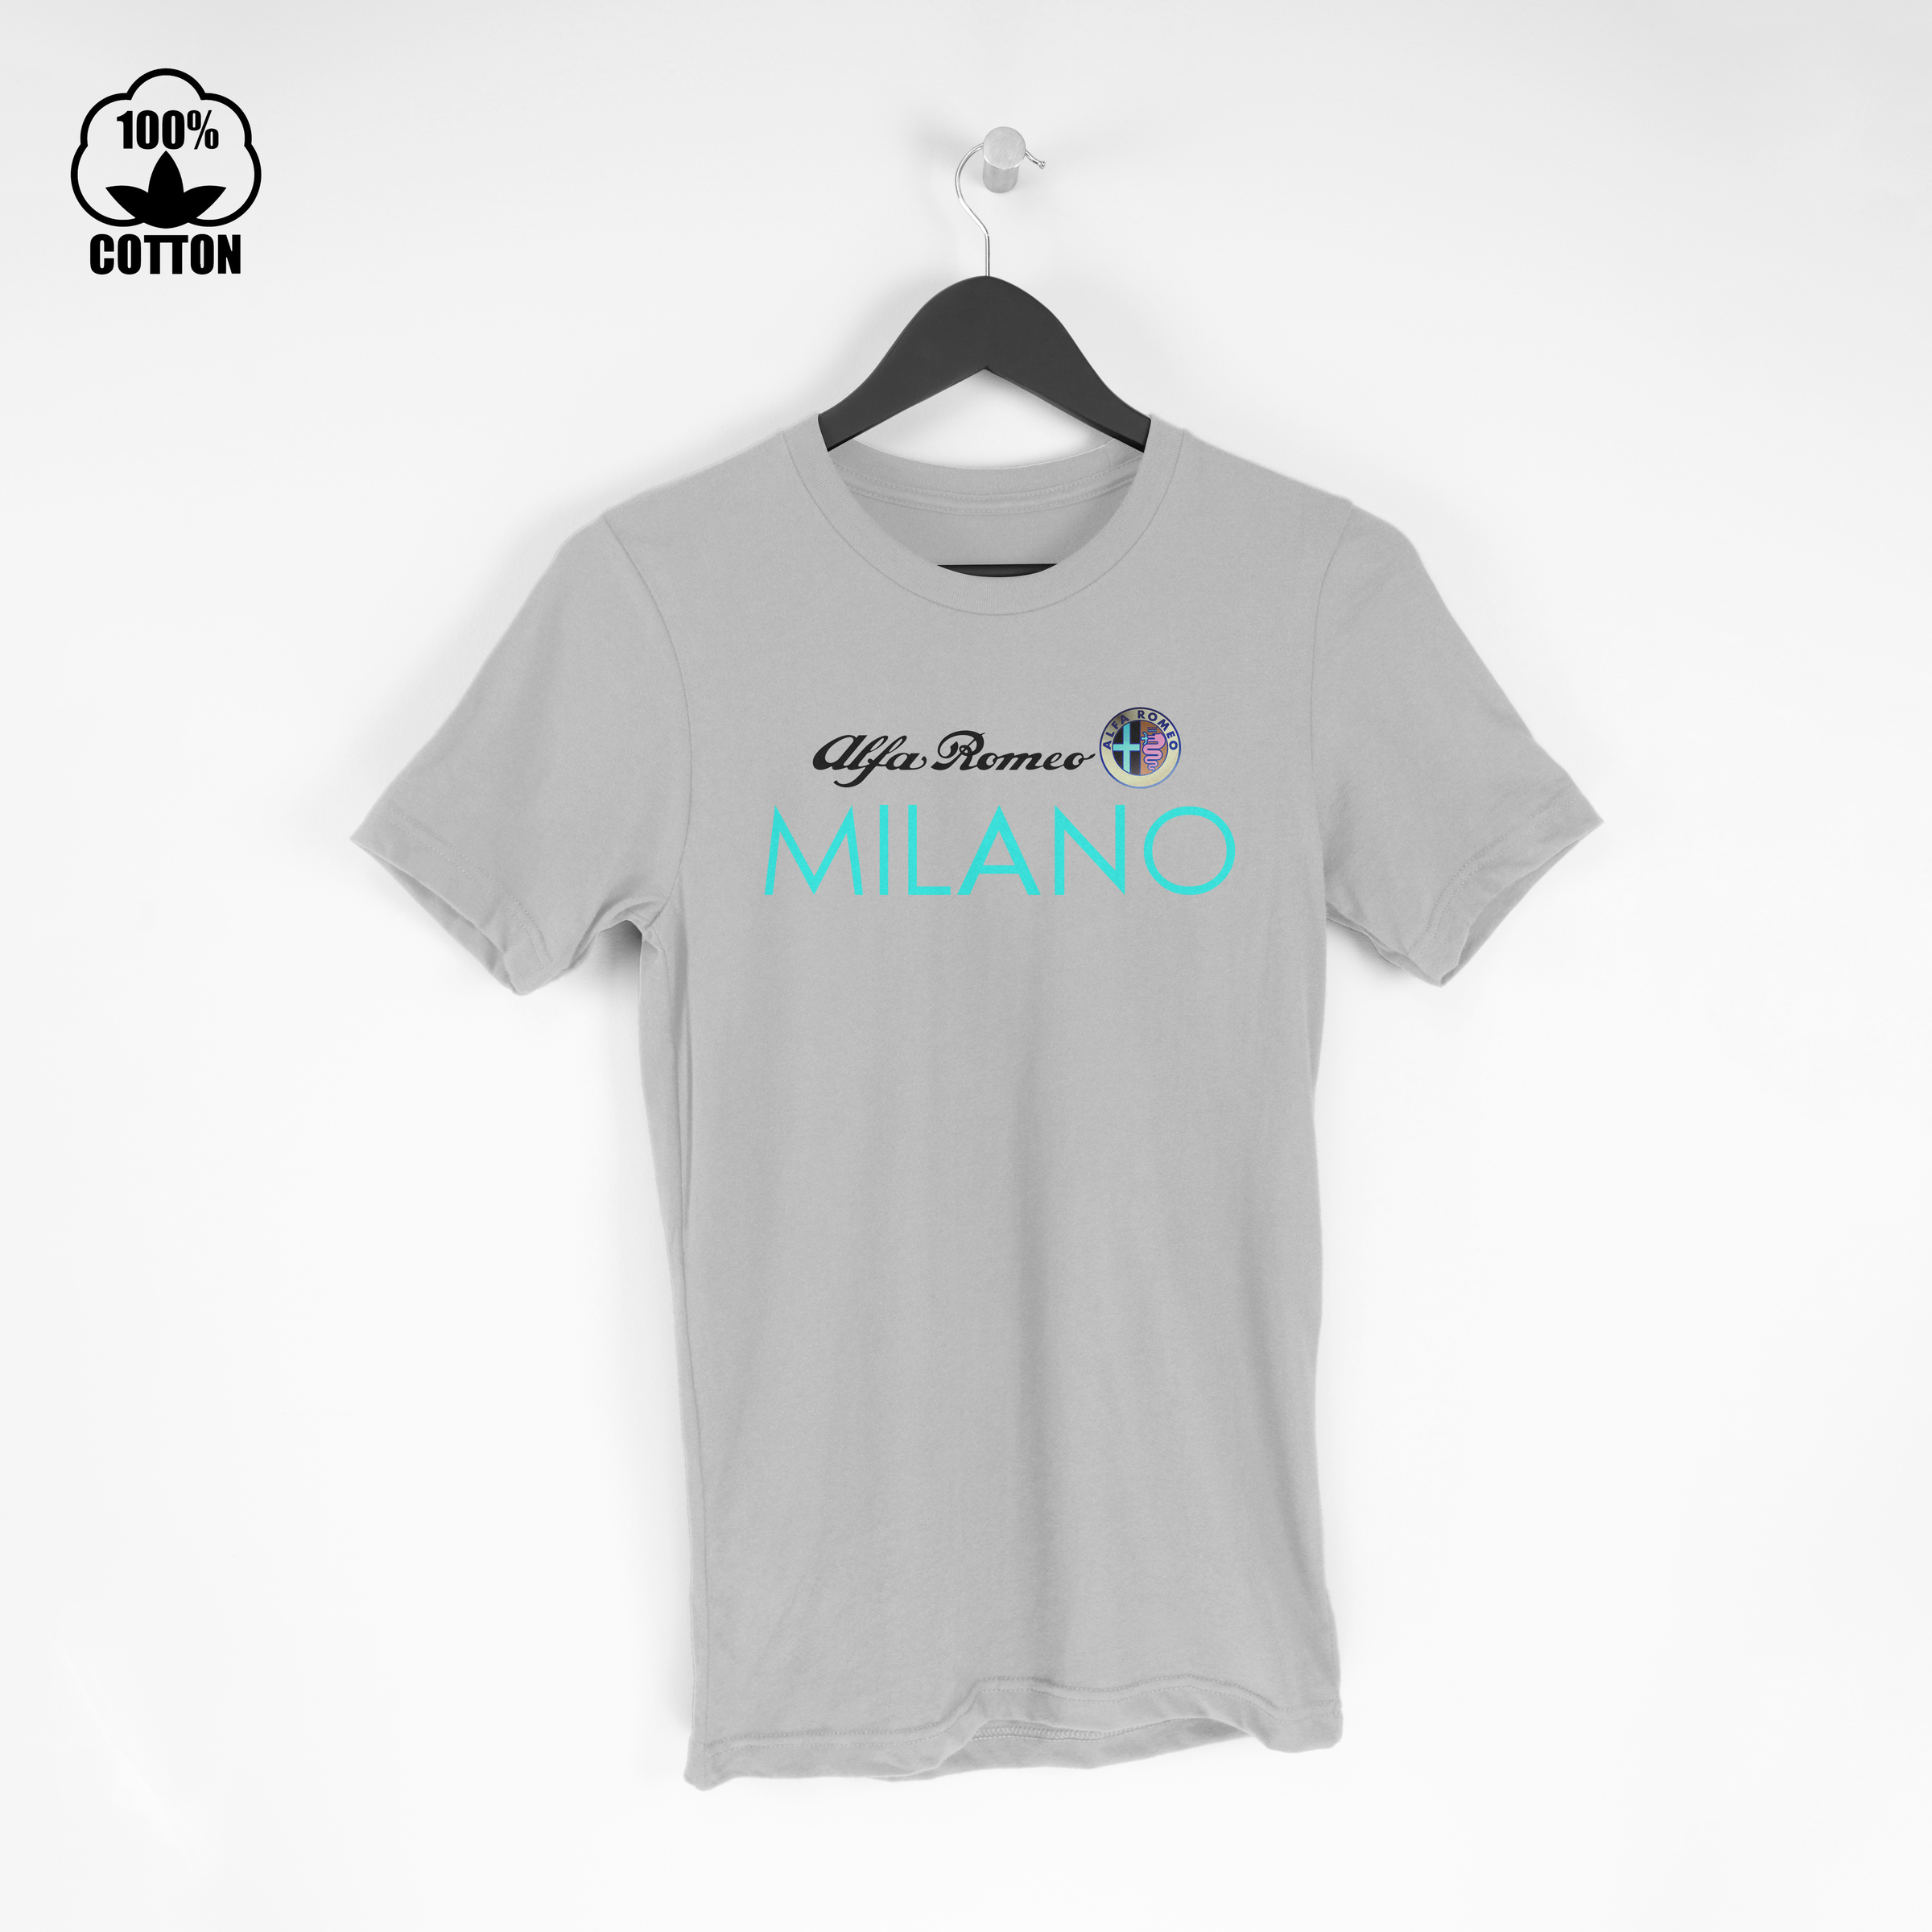 Alfa Romeo Shirt Milano Logo Tee Mens Clothing New Cotton Tshirt Size S-XXL USA  Gainsboro.jpg